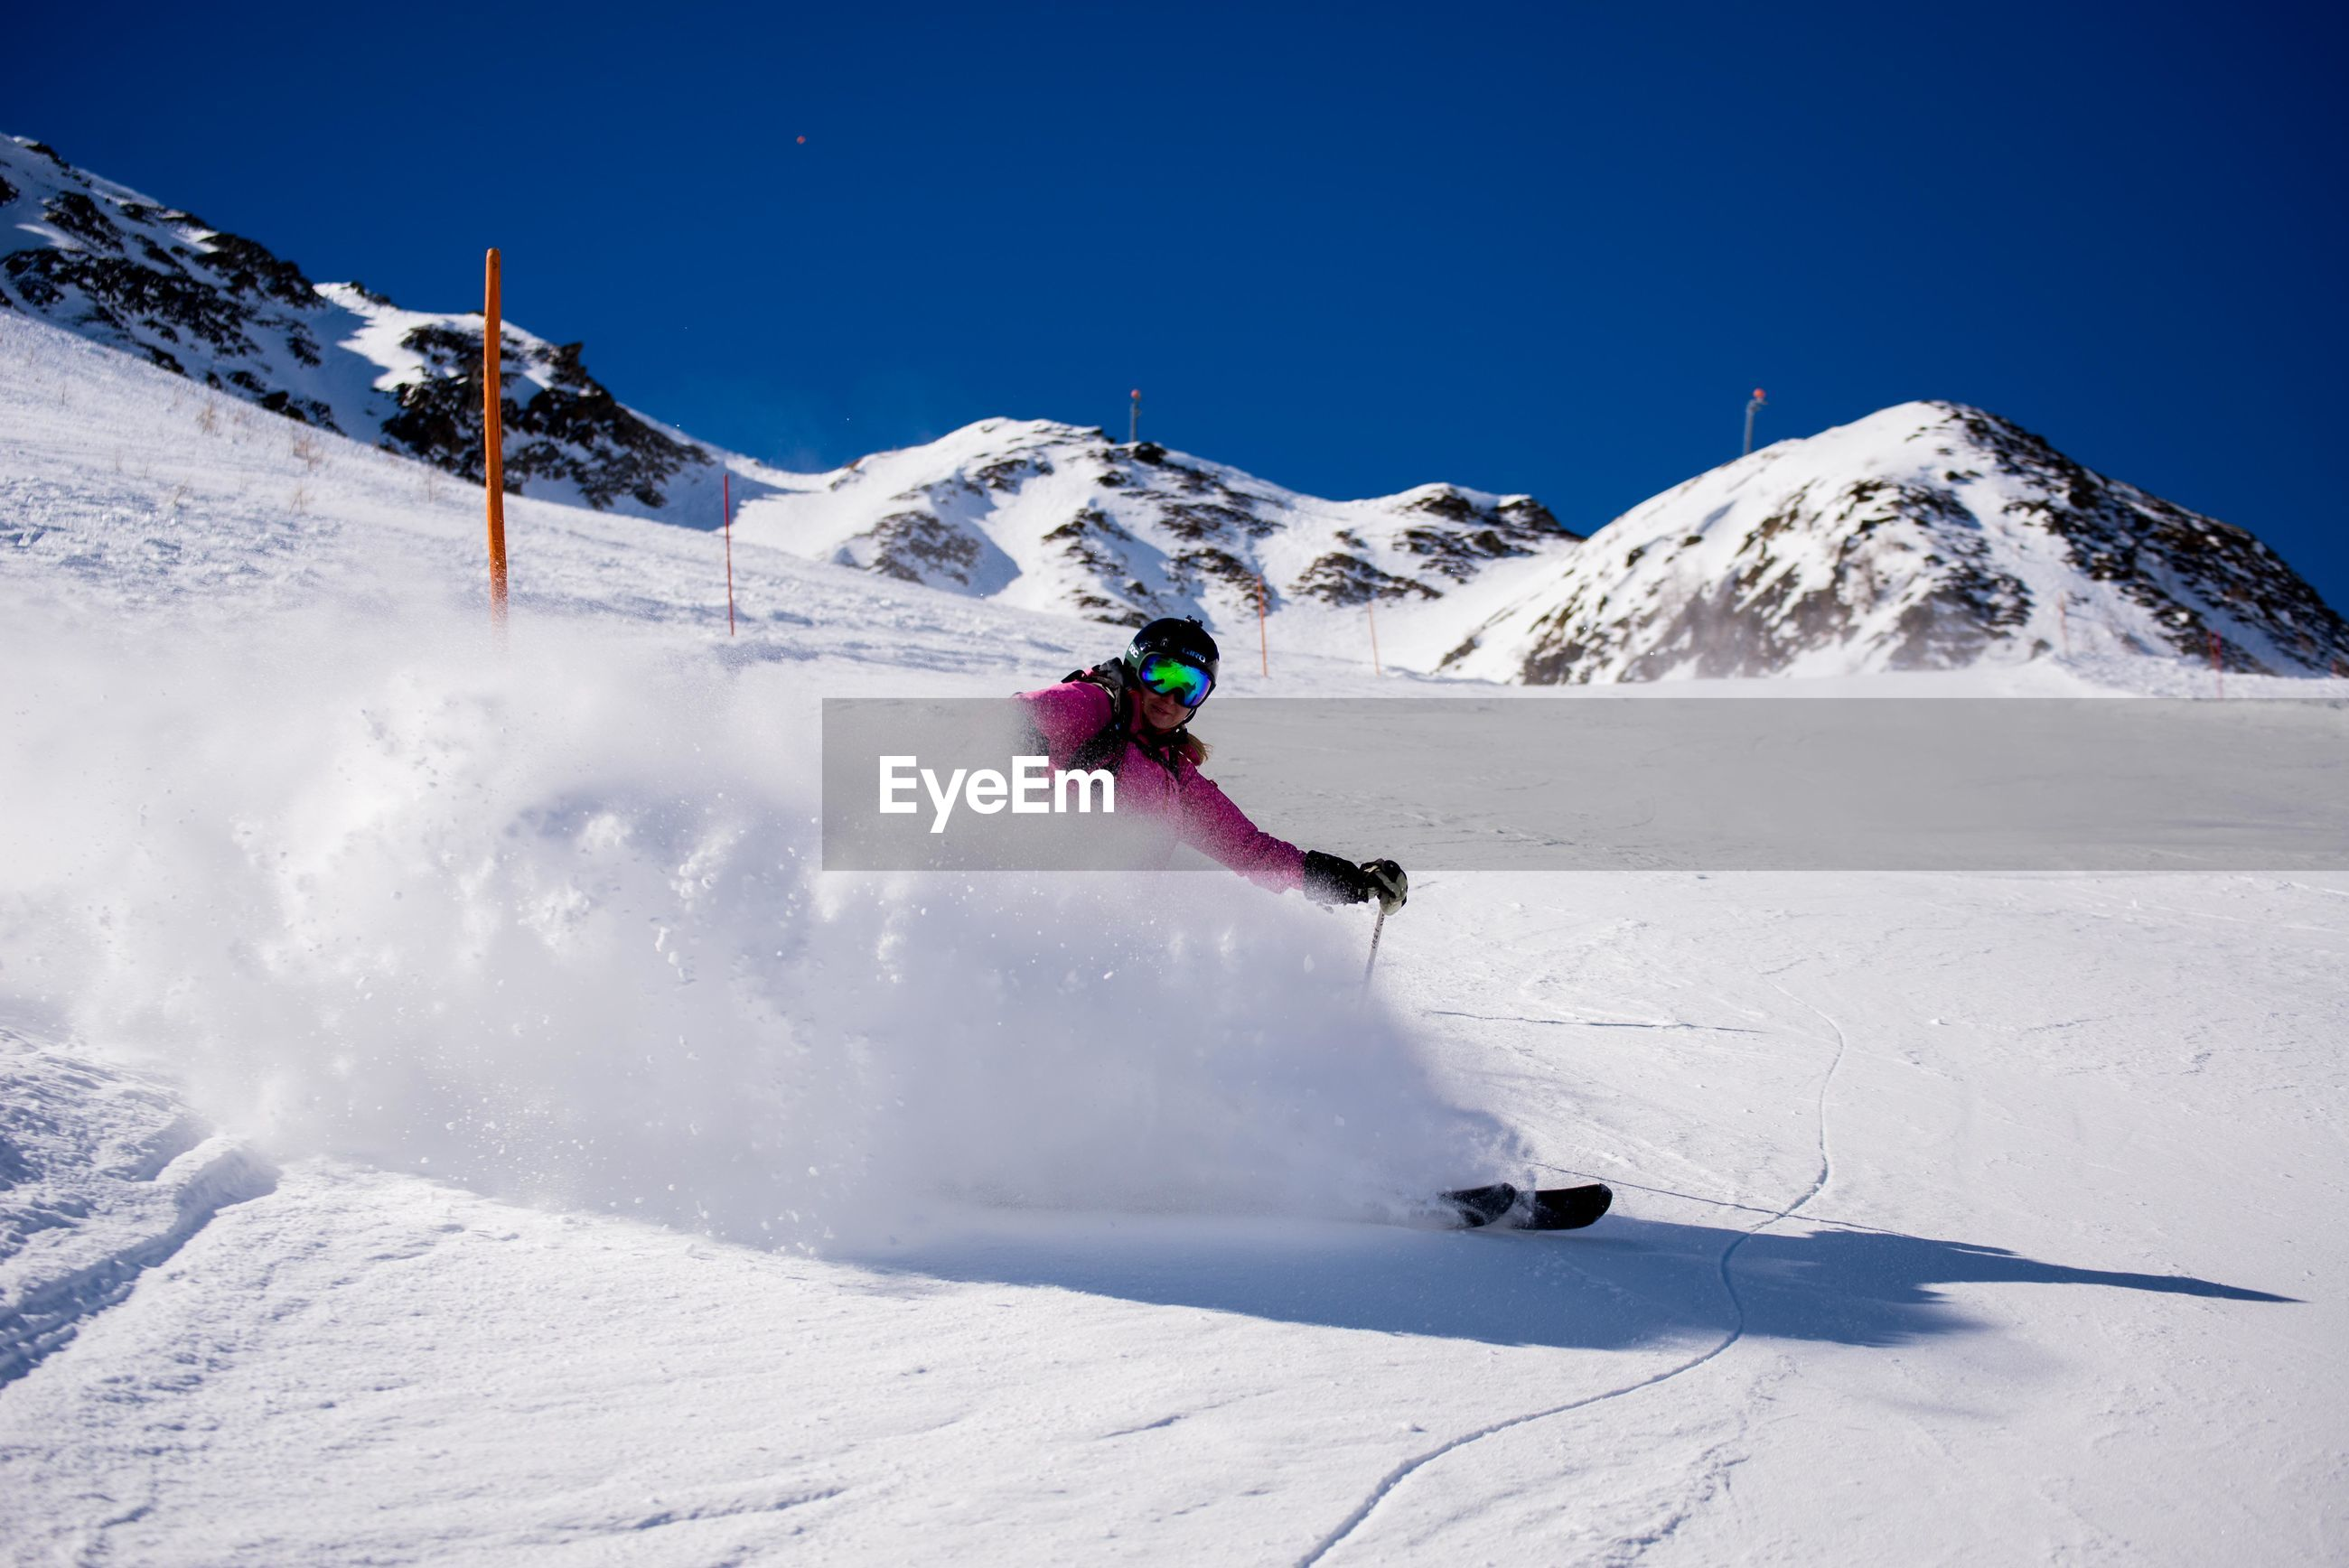 Woman skiing on snowy field against clear blue sky